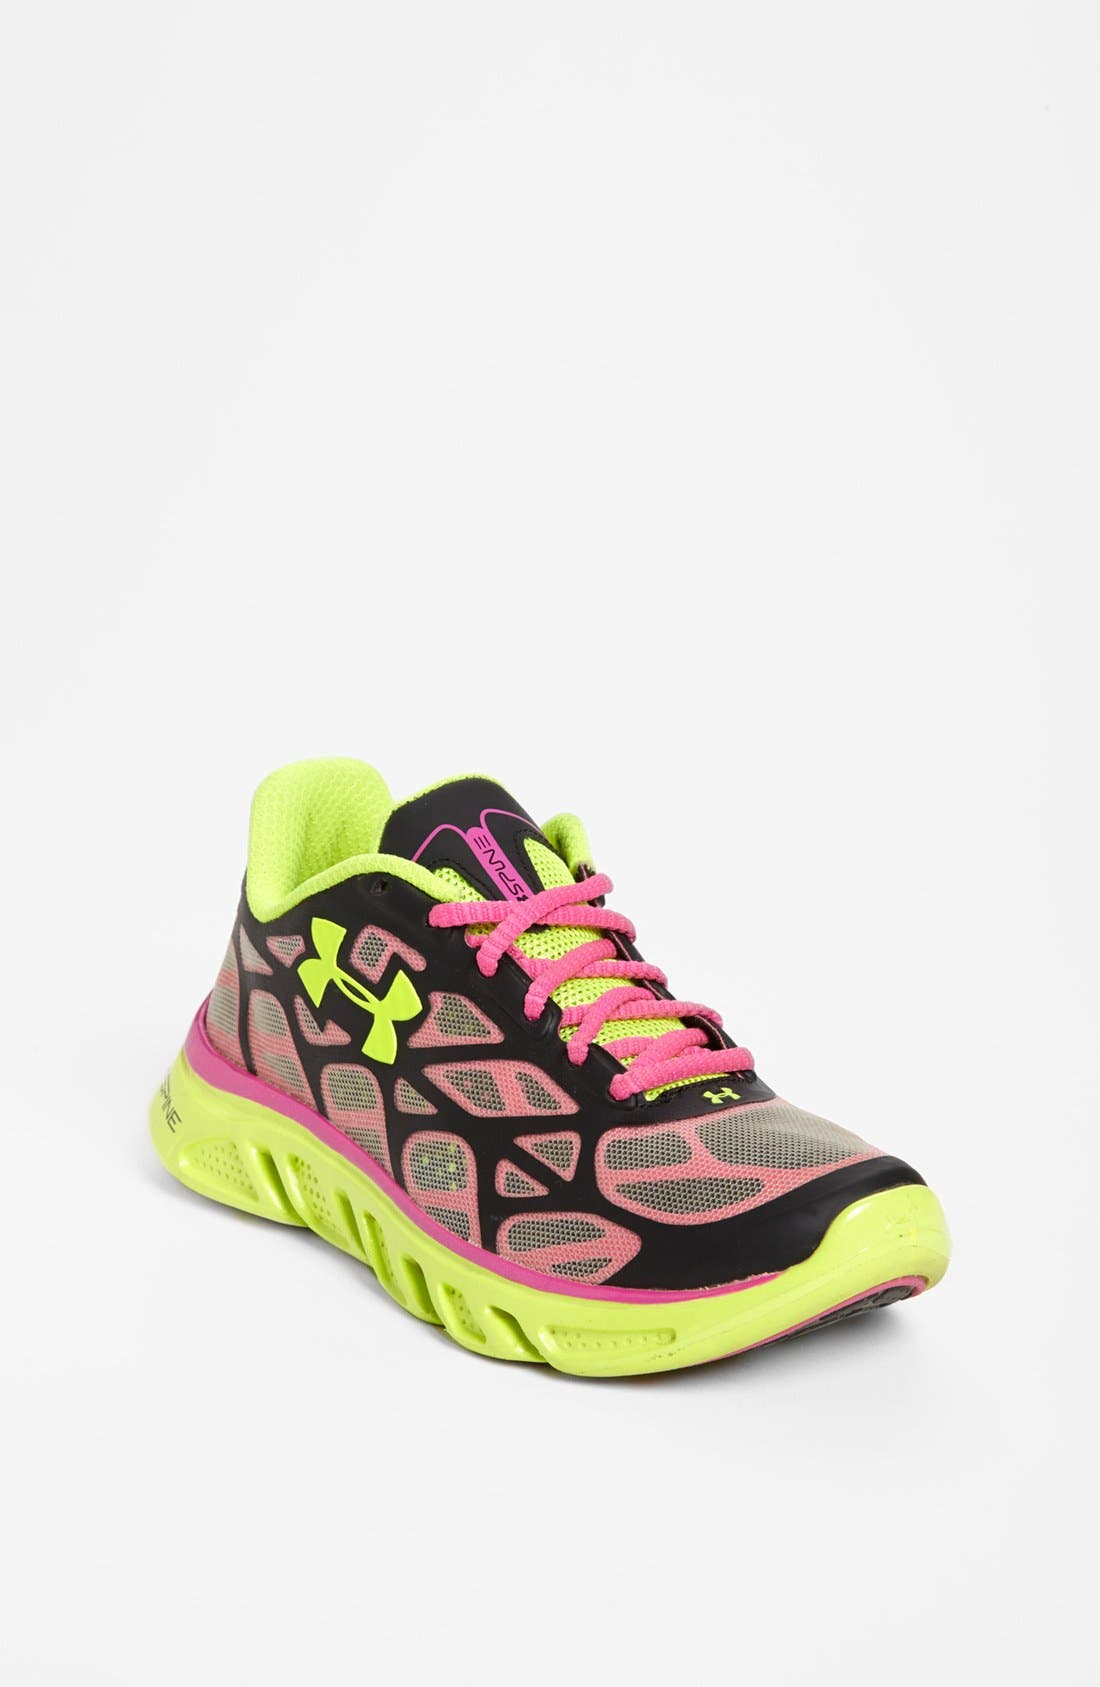 Alternate Image 1 Selected - Under Armour 'Spine™ Vice' Athletic Shoe (Toddler, Little Kid & Big Kid)